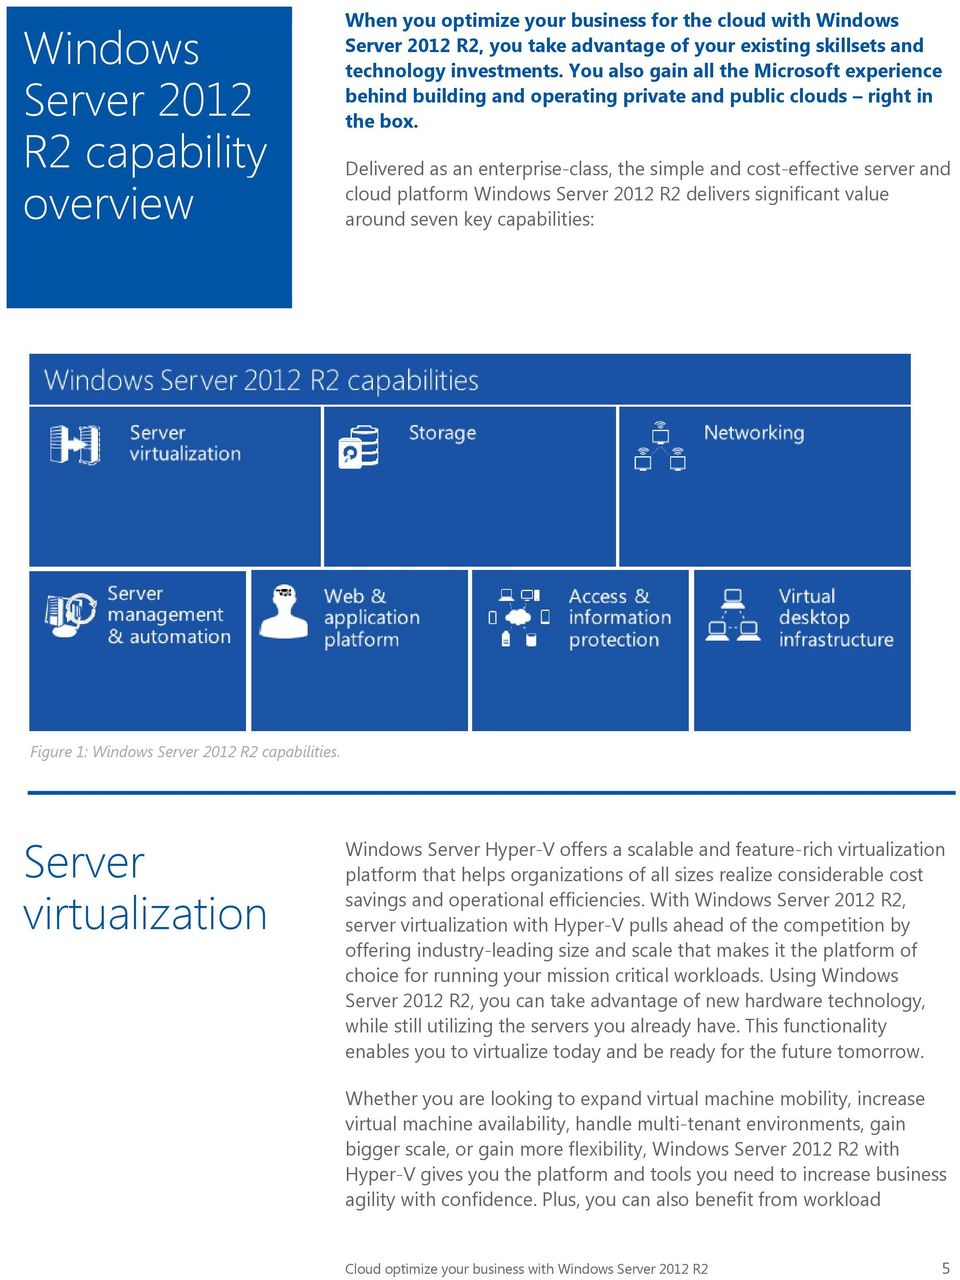 Delivered as an enterprise-class, the simple and cost-effective server and cloud platform Windows Server 2012 R2 delivers significant value around seven key capabilities: Figure 1: Windows Server